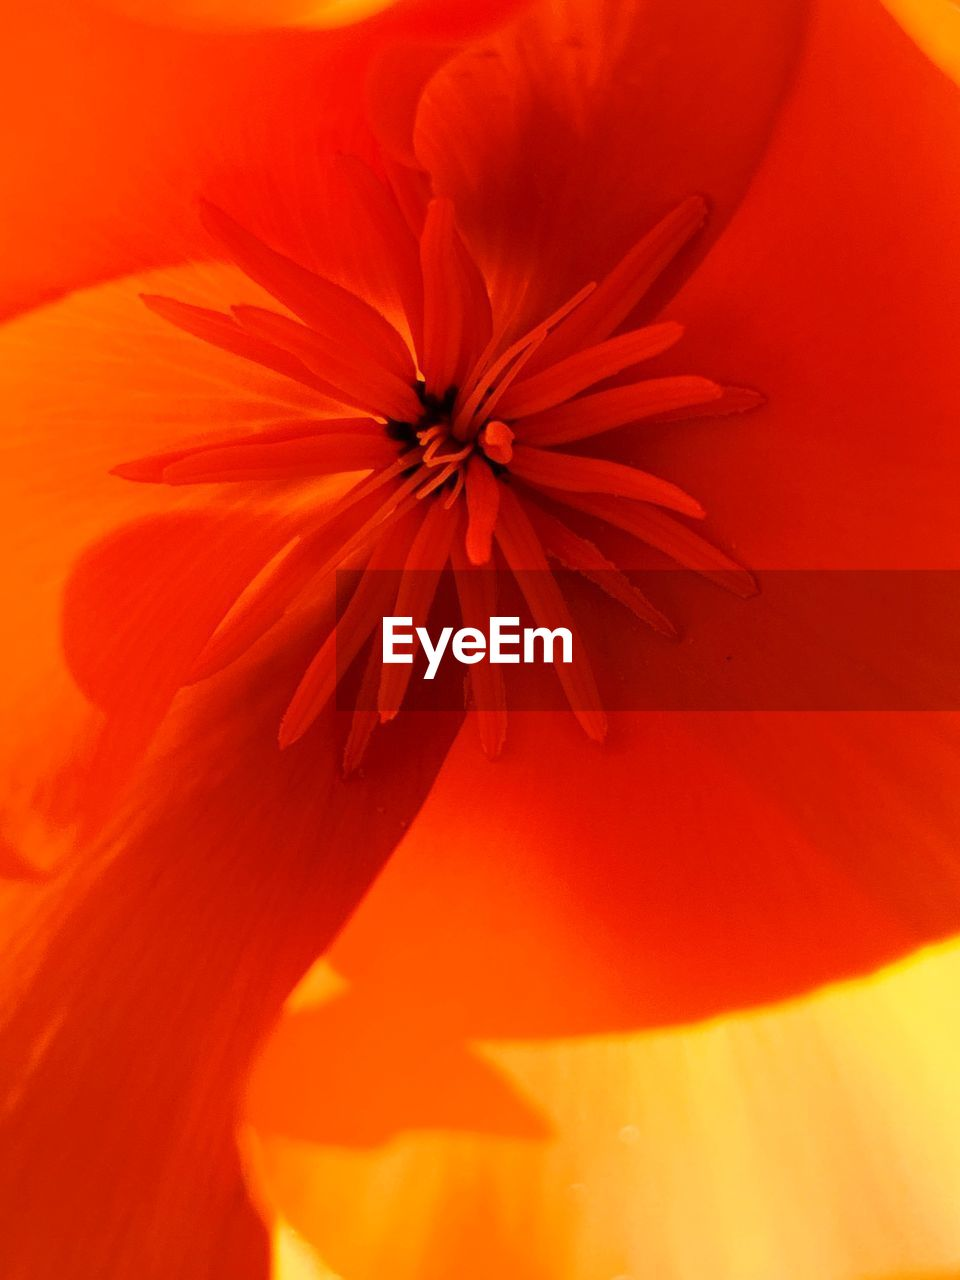 flower, flowering plant, petal, plant, beauty in nature, close-up, freshness, flower head, inflorescence, fragility, vulnerability, pollen, growth, full frame, orange color, no people, nature, red, backgrounds